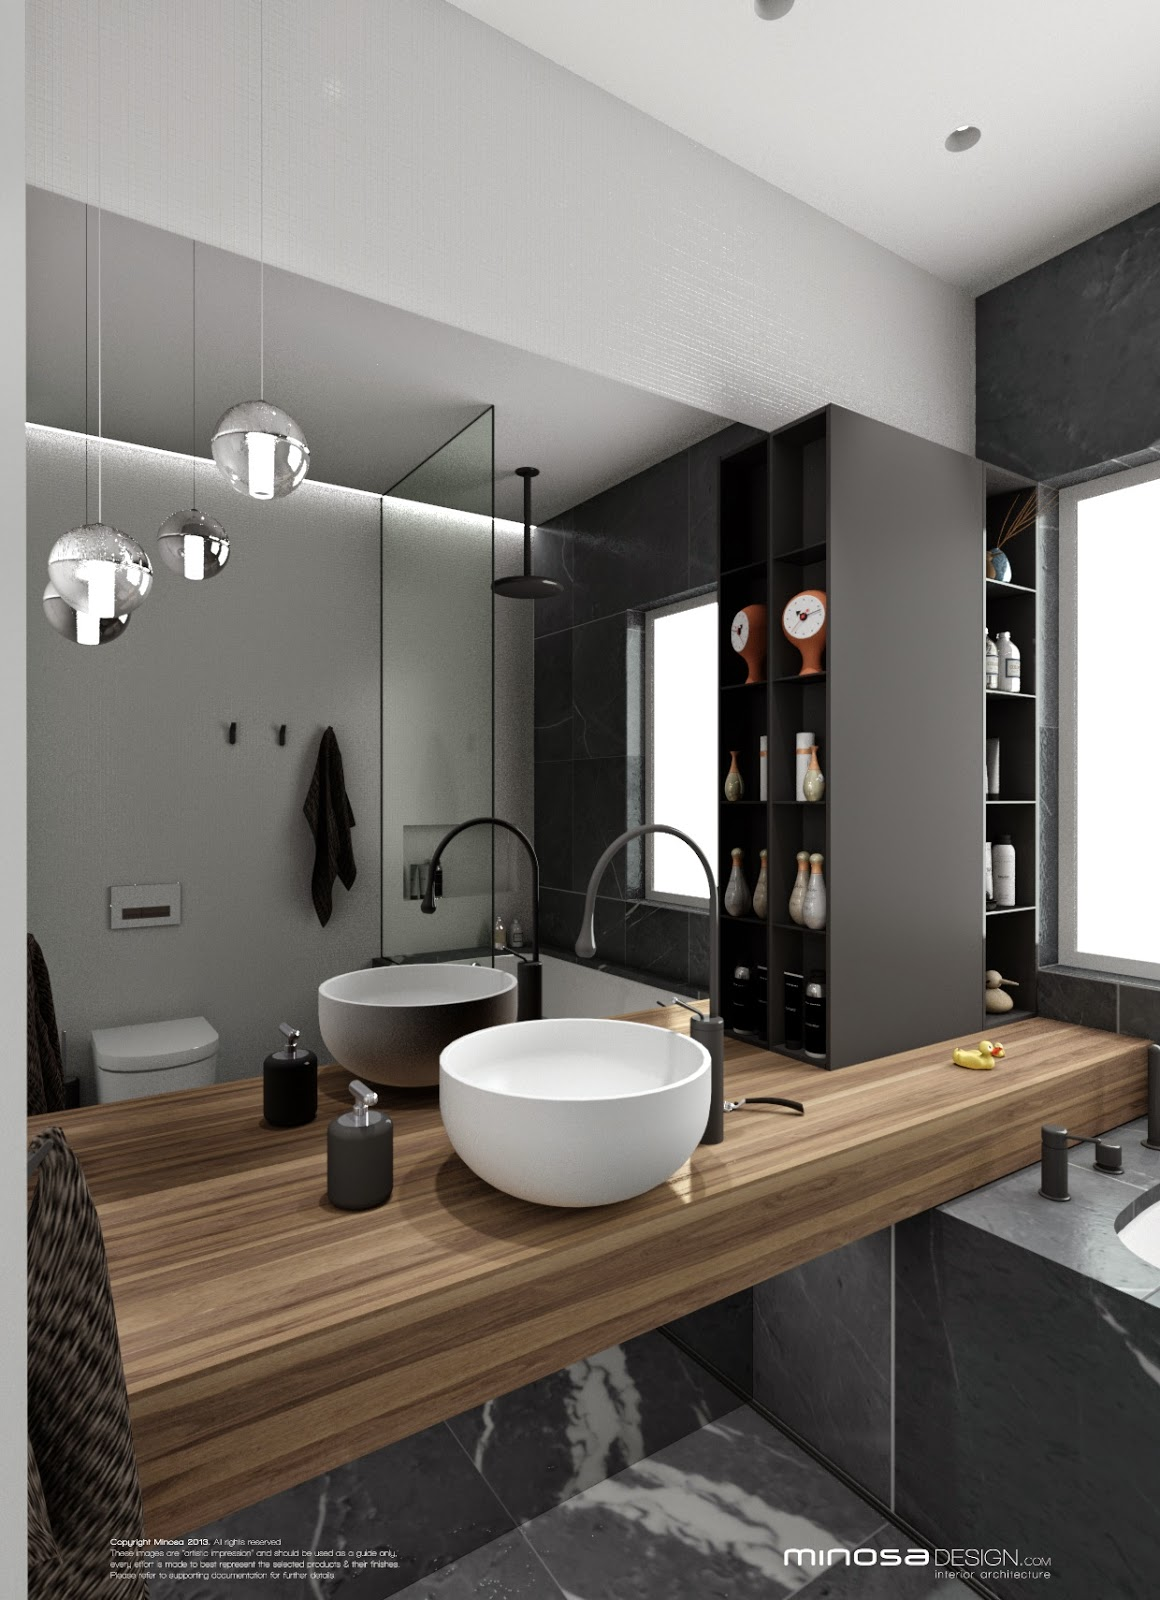 Minosa bathroom design small space feels large - Bathroom design small spaces pictures ...